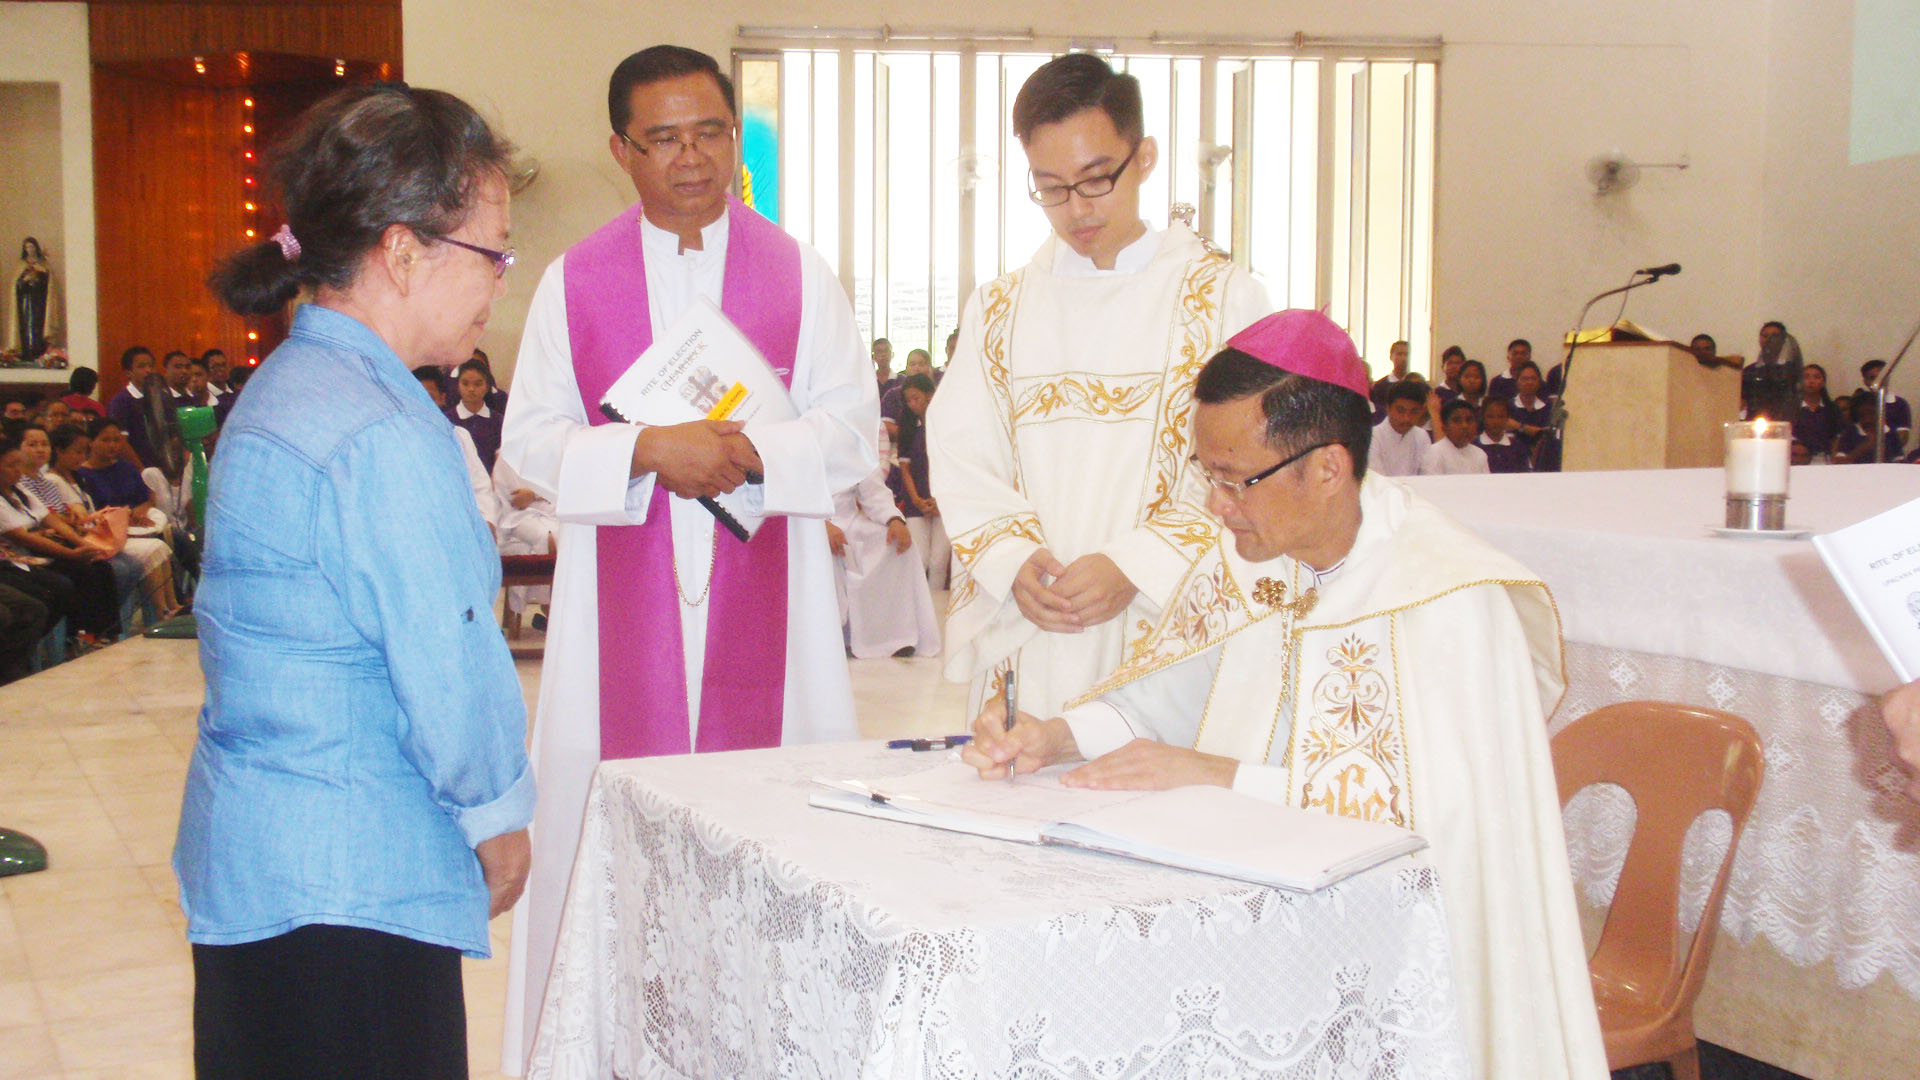 The prelate signs the Book of the Elect of one of the parishes.